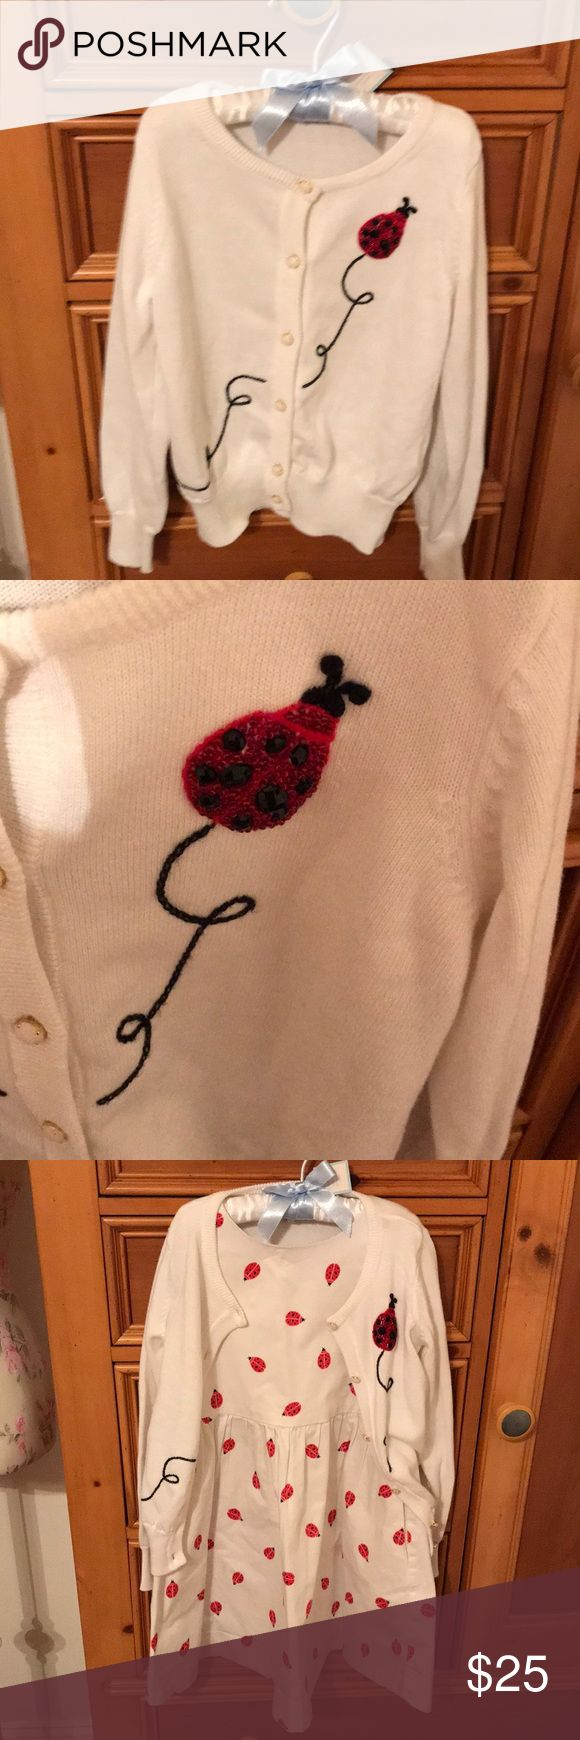 Beaded ladybug cardigan - Kate Spade New York Beaded ladybug children's cardigan from Kate Spade New York.  White with red and black beading children's size 5.  Will consider bundle with girls ladybug dress size 6. kate spade Other